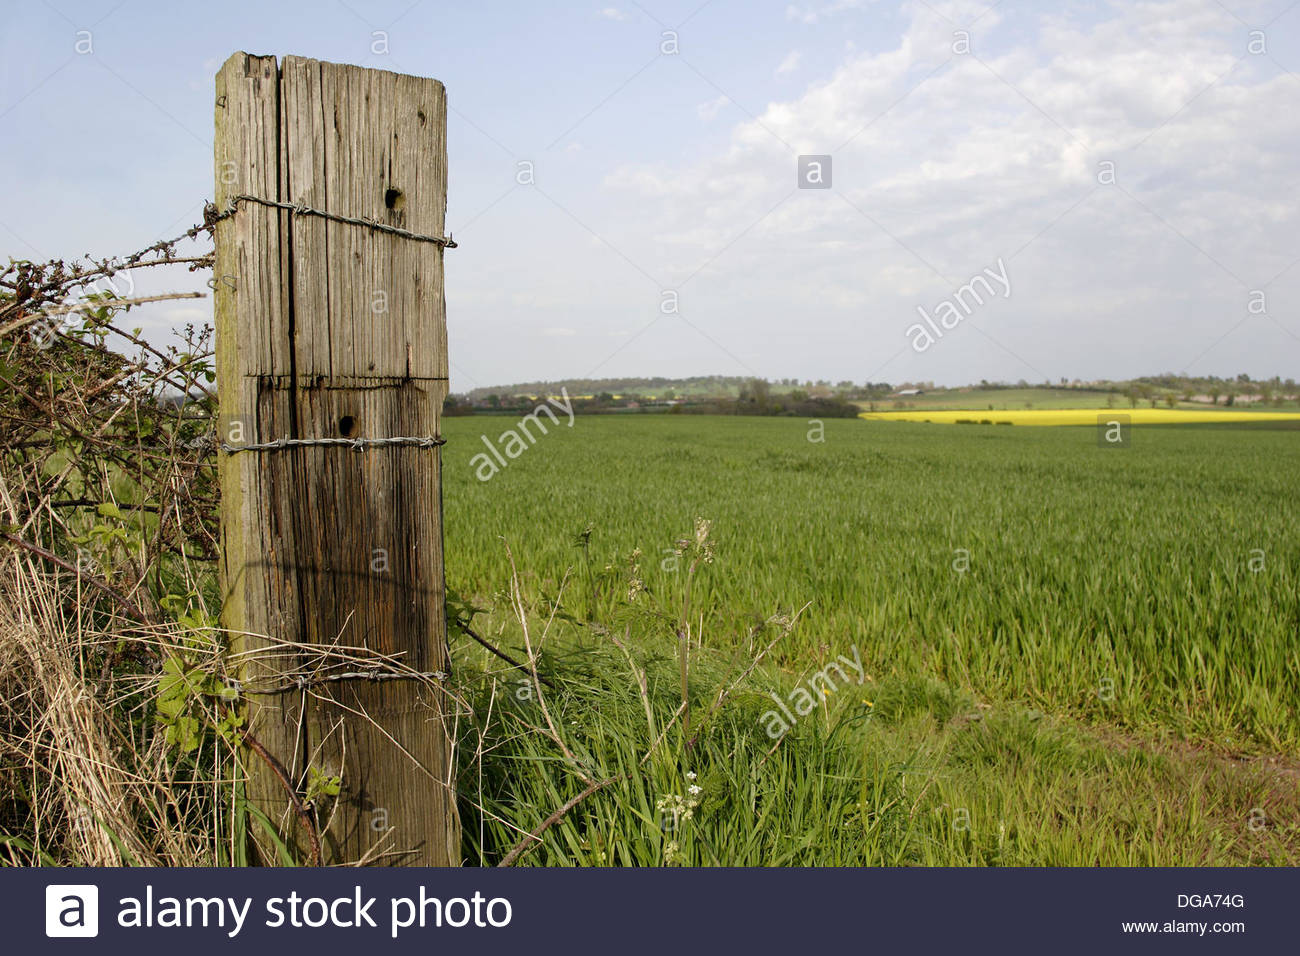 old-wooden-fence-post-in-field-close-up-england-uk-DGA74G.jpg